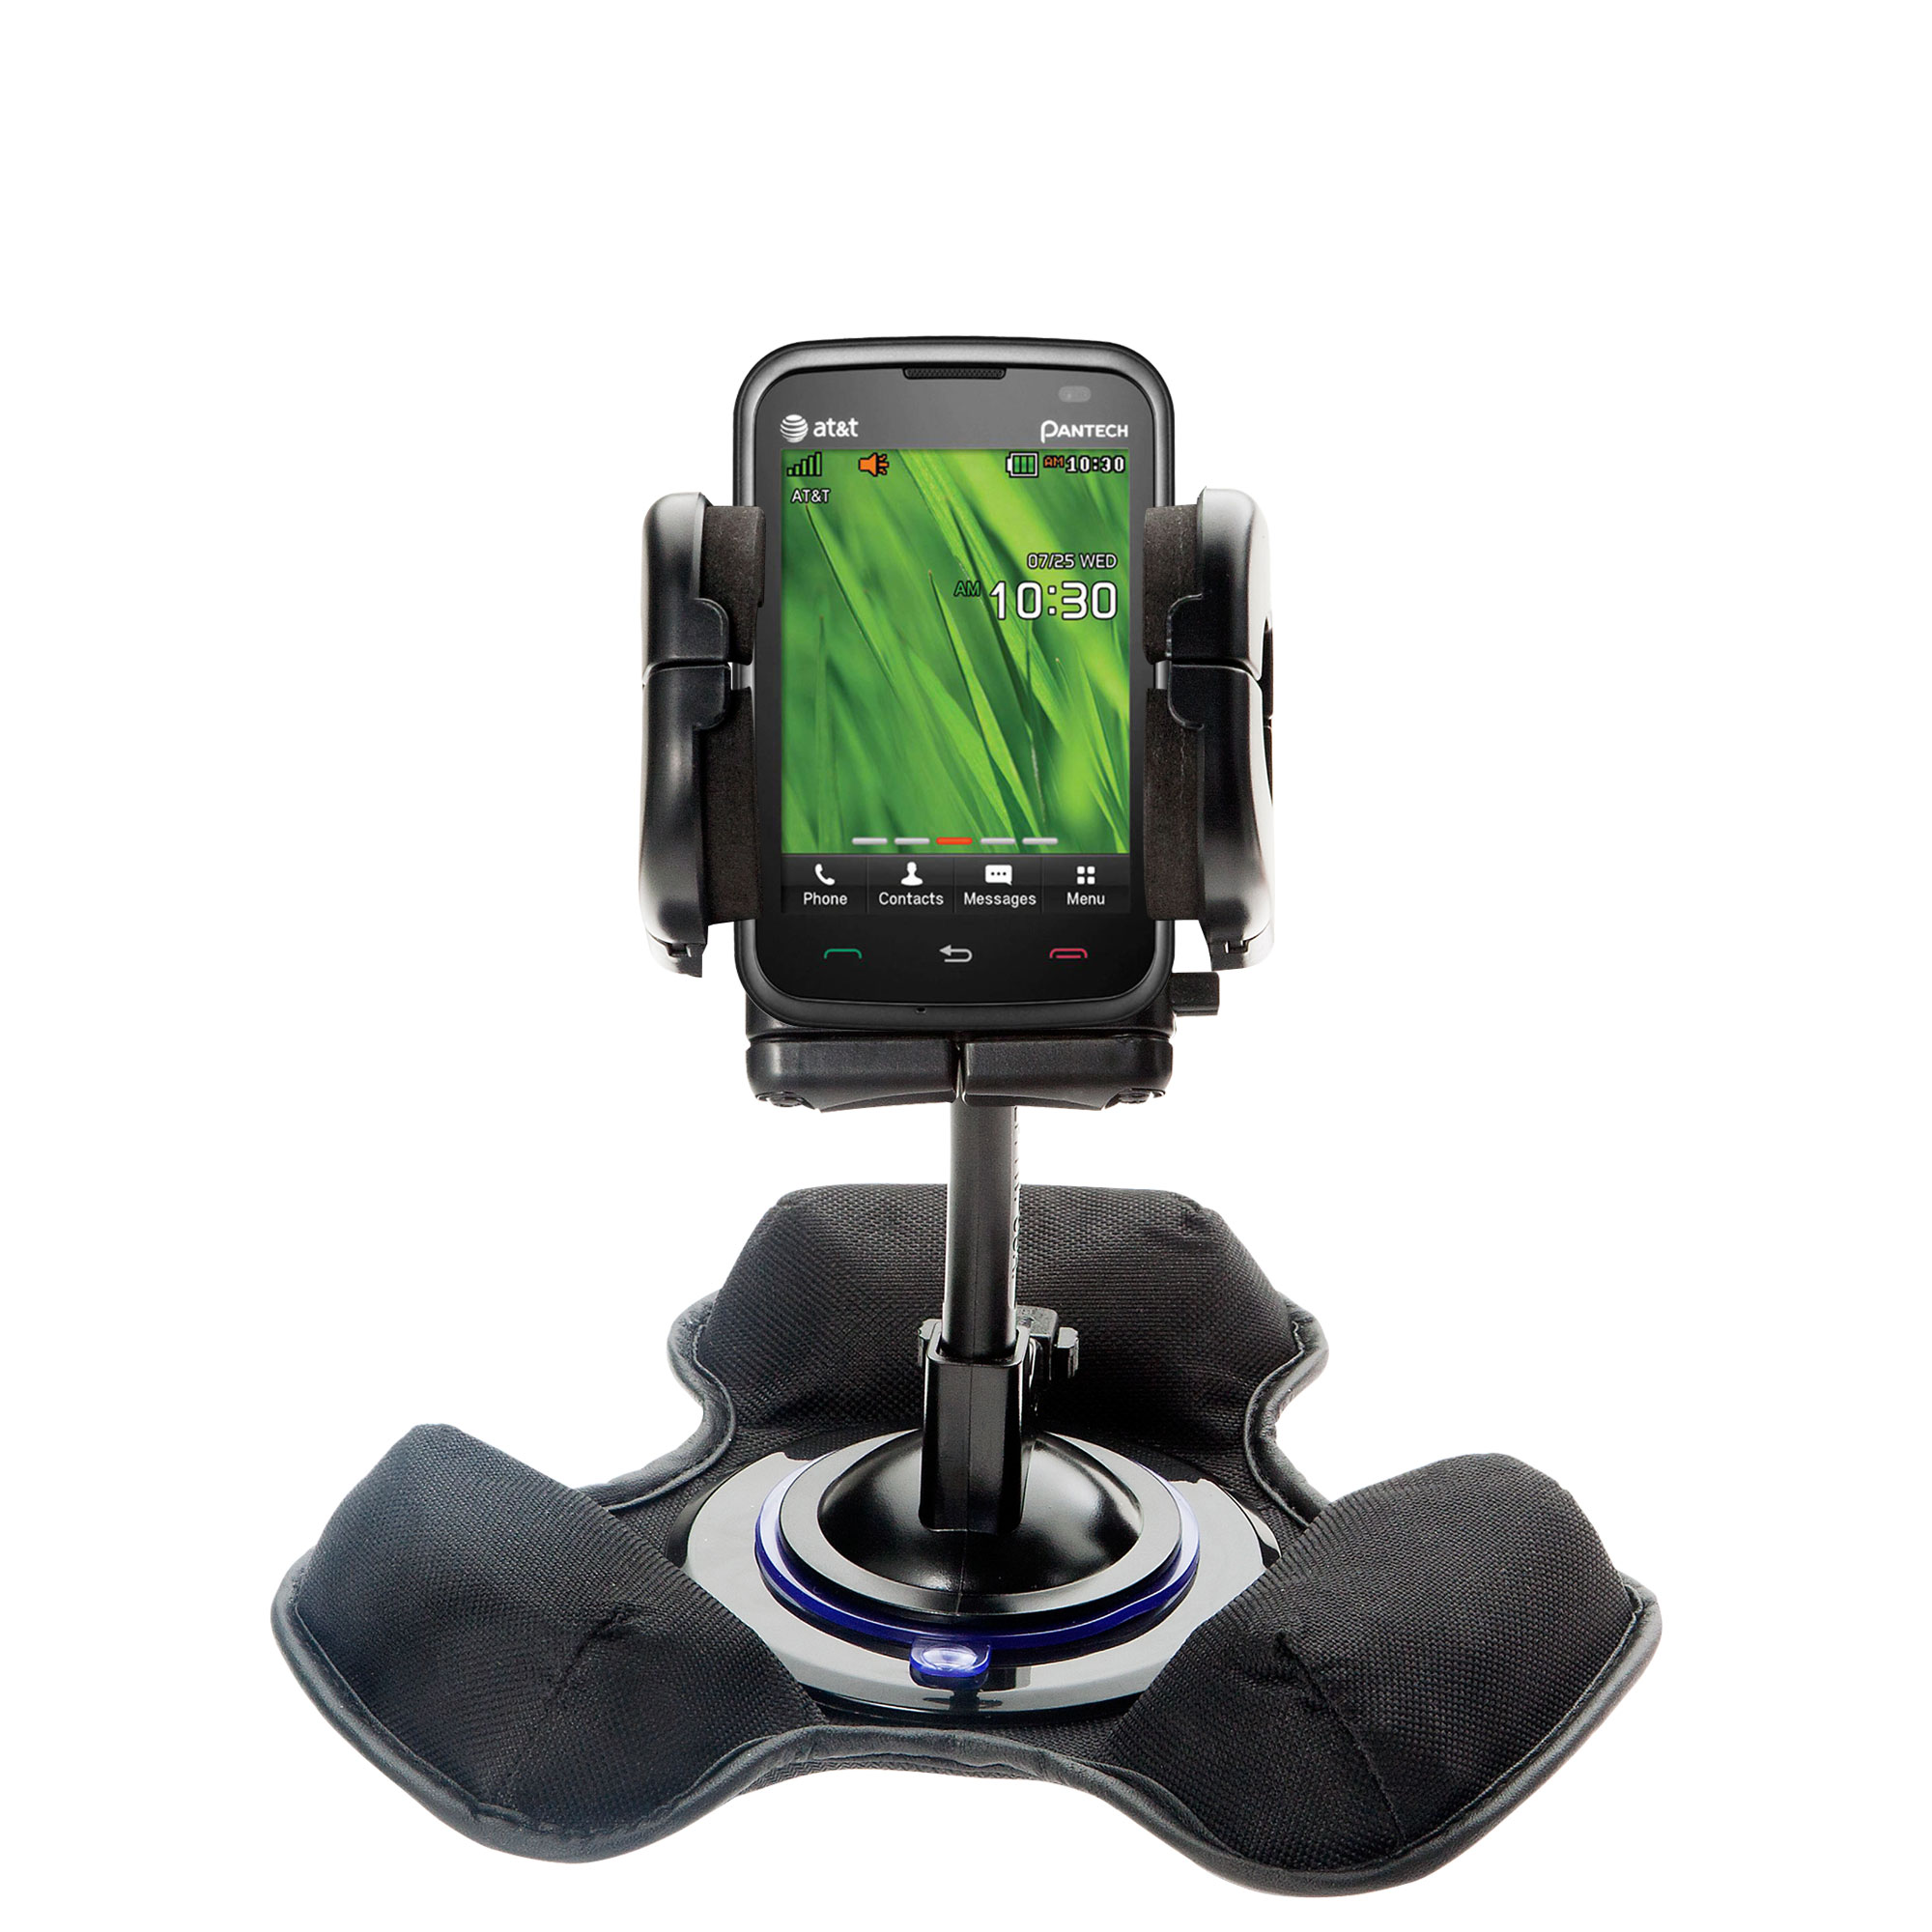 Dash and Windshield Holder compatible with the Pantech Renue